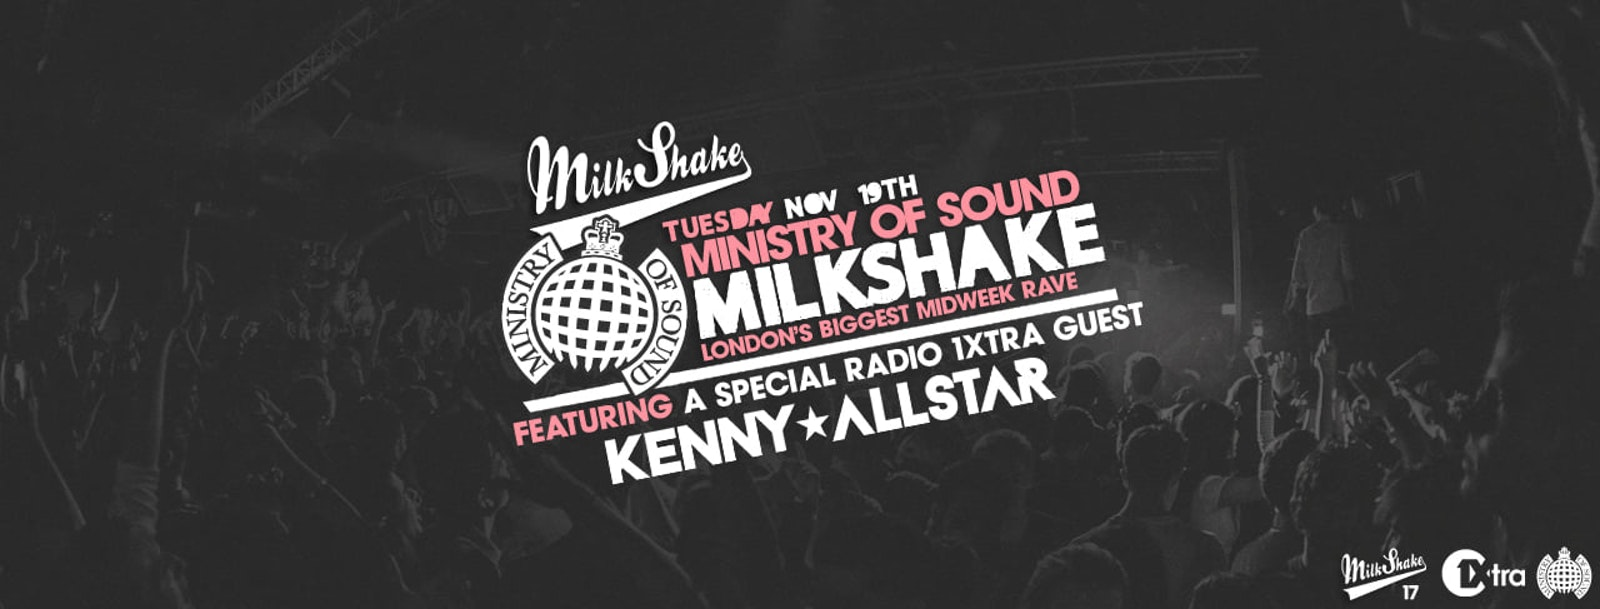 Milkshake, Ministry of Sound   1Xtra Takeover with Kenny Allstar + More